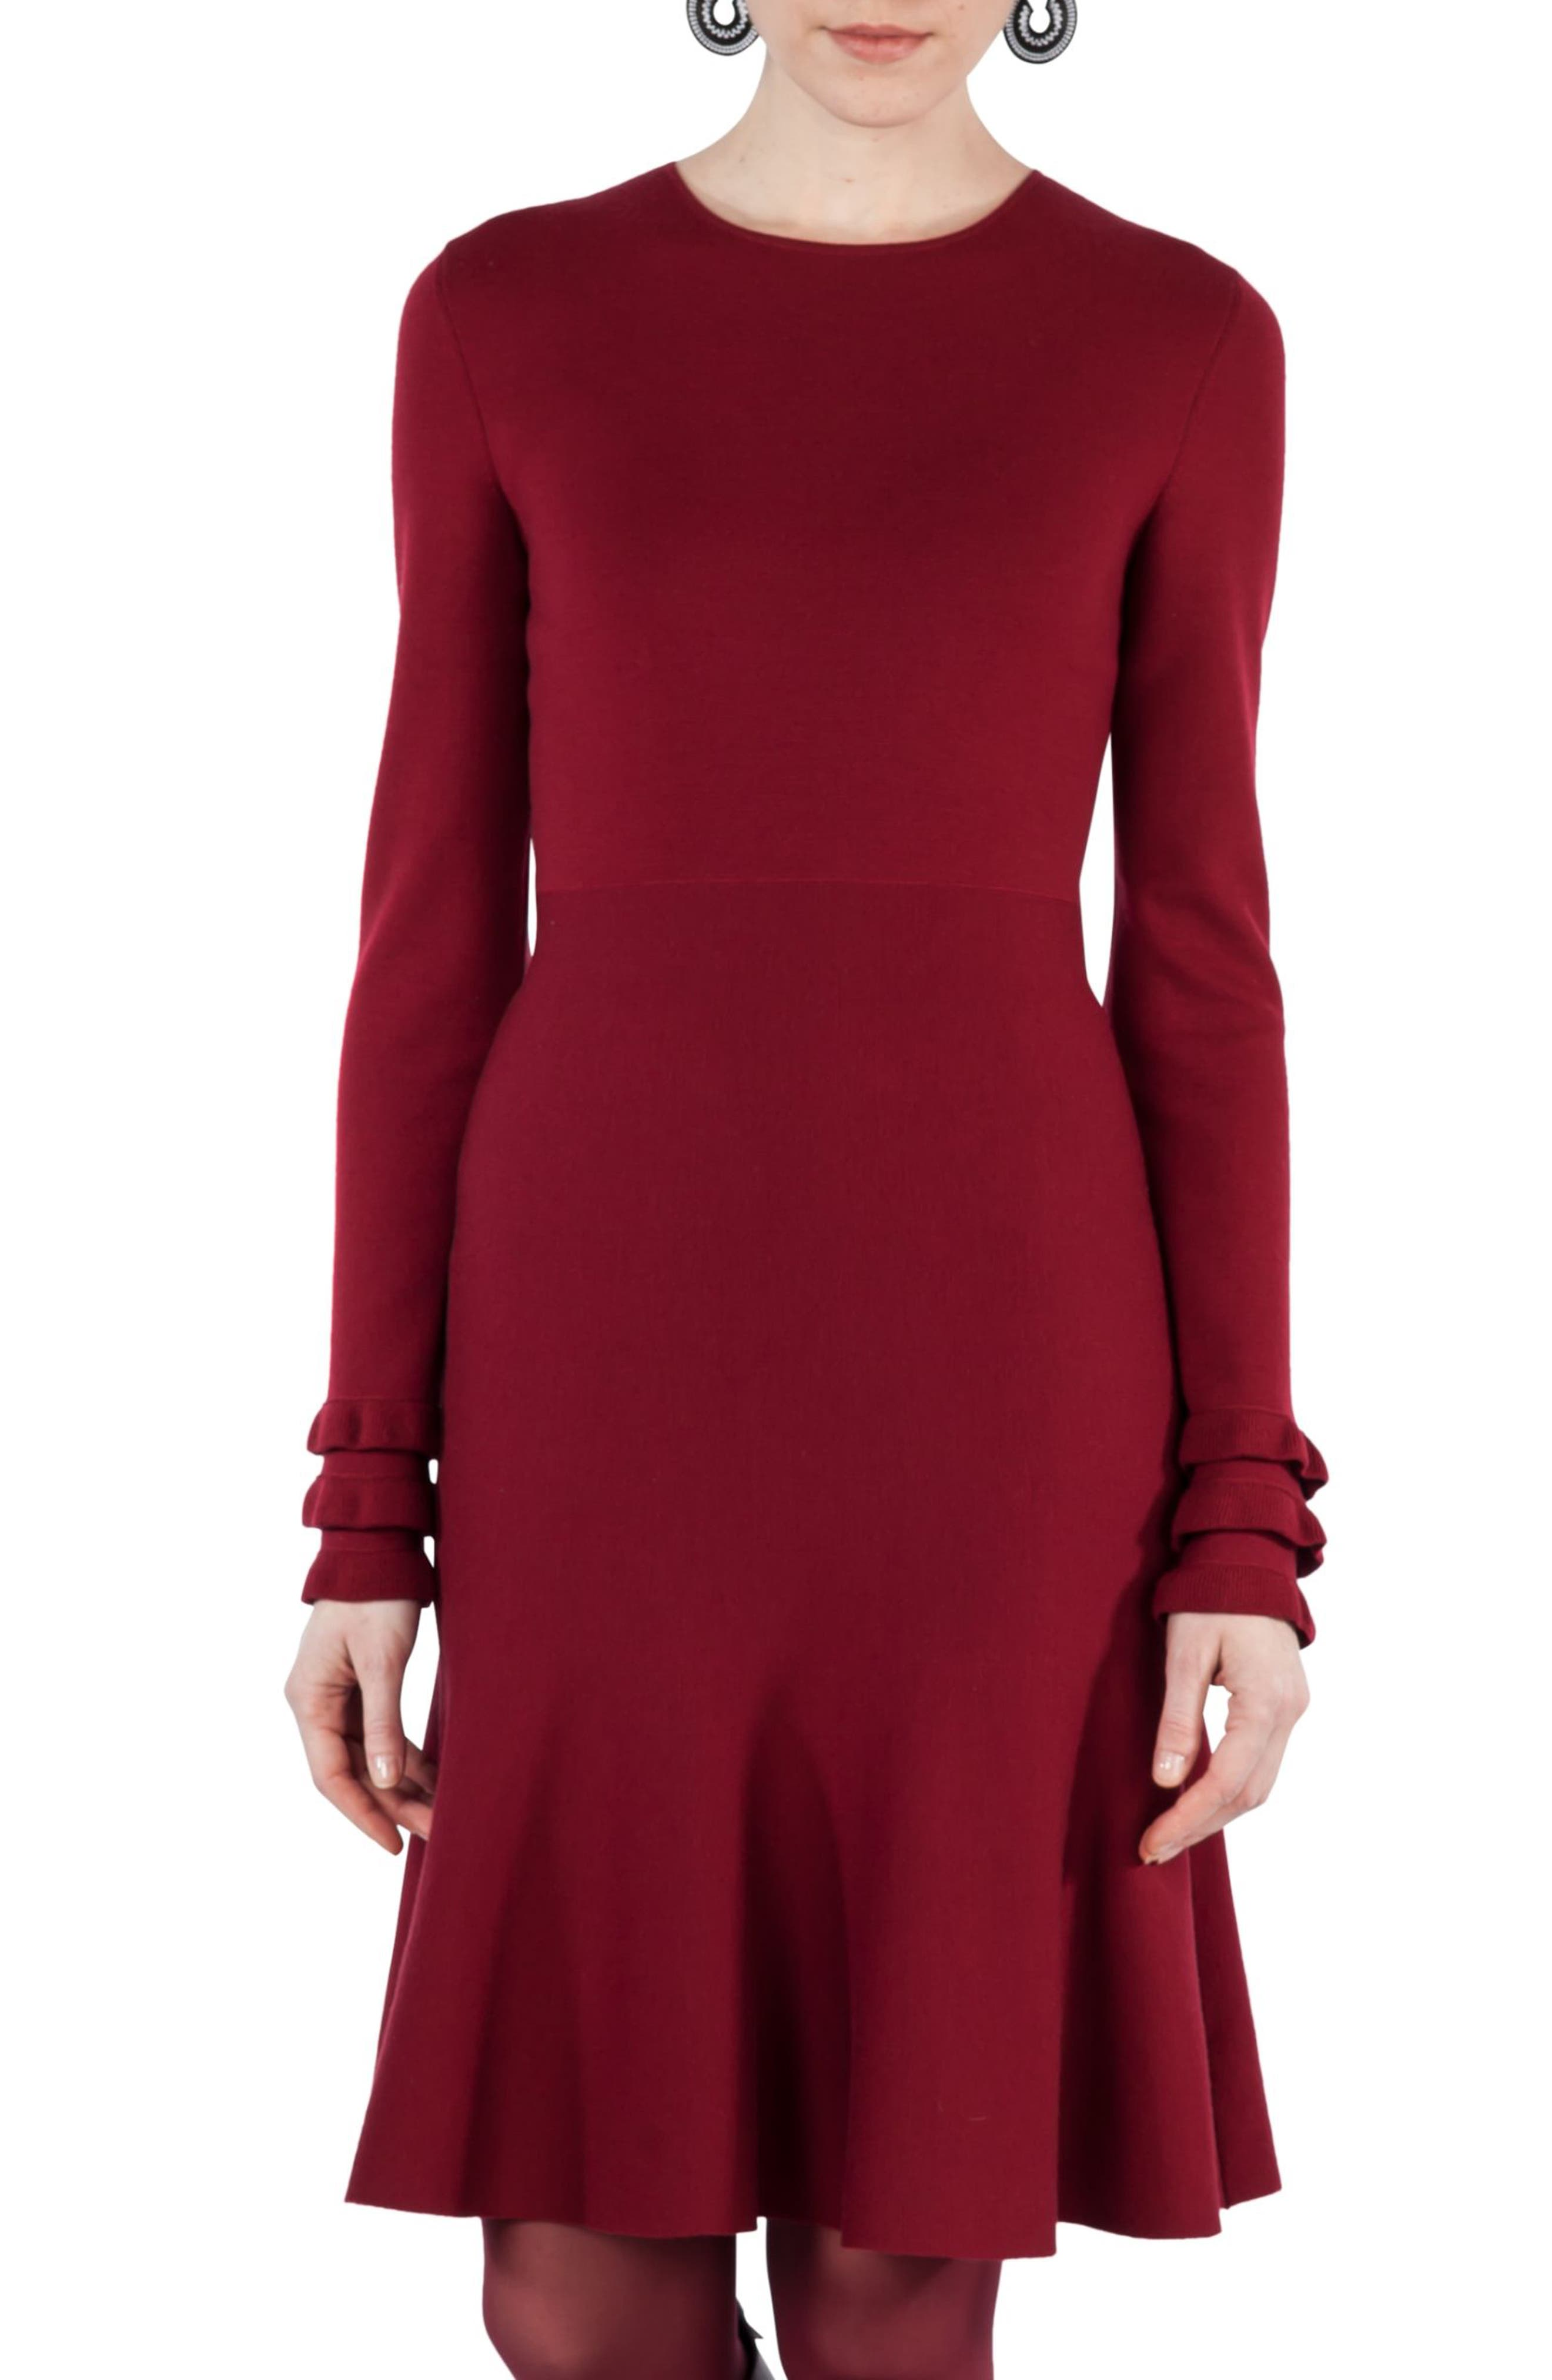 Knit Stretch Wool Dress,                             Alternate thumbnail 4, color,                             930